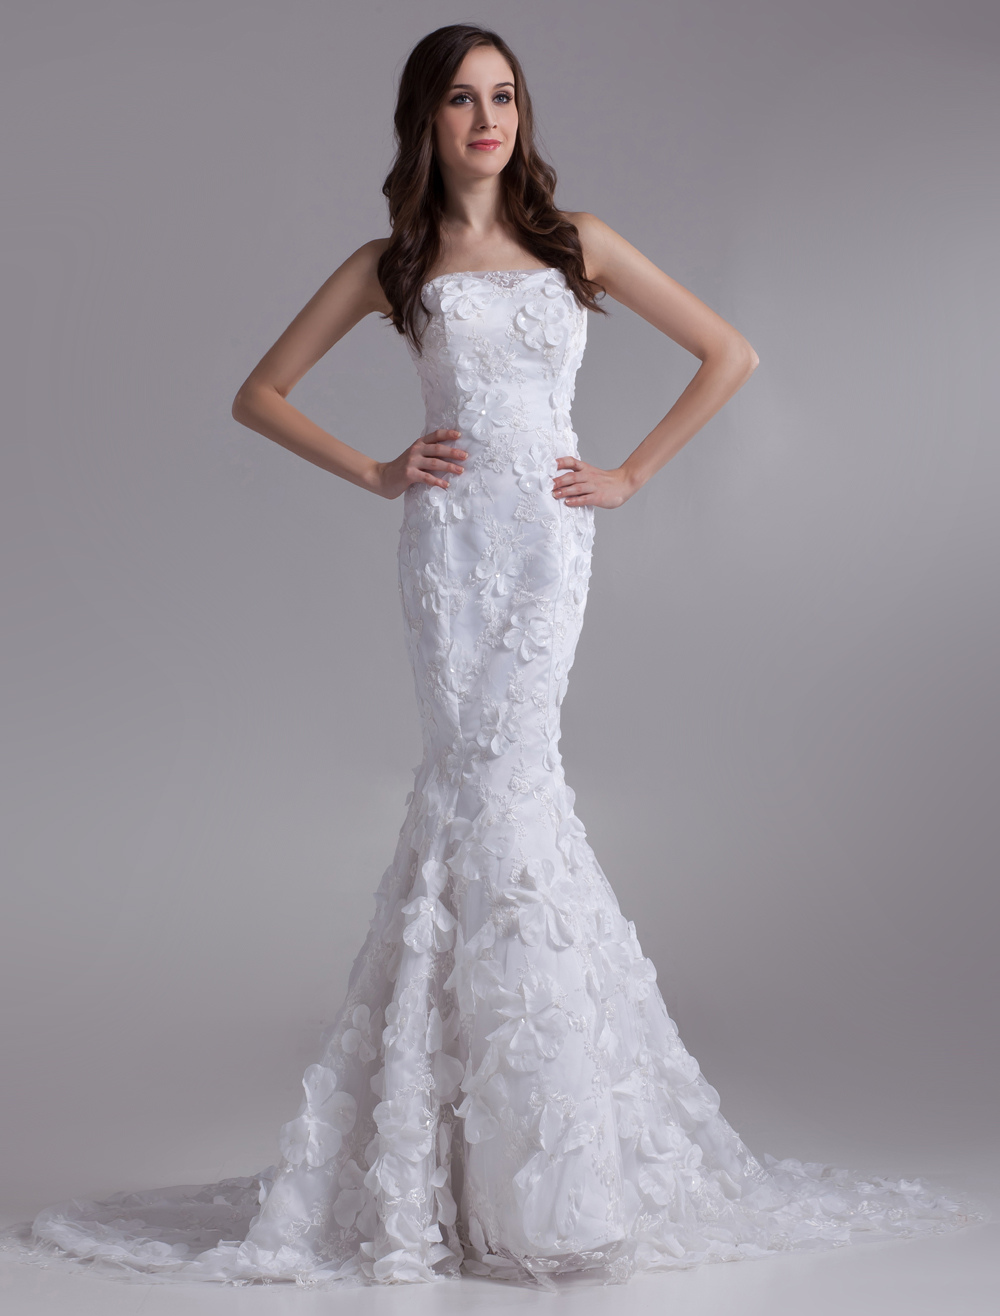 Beautiful White Mermaid Strapless Beading Lace Bridal Wedding Dress